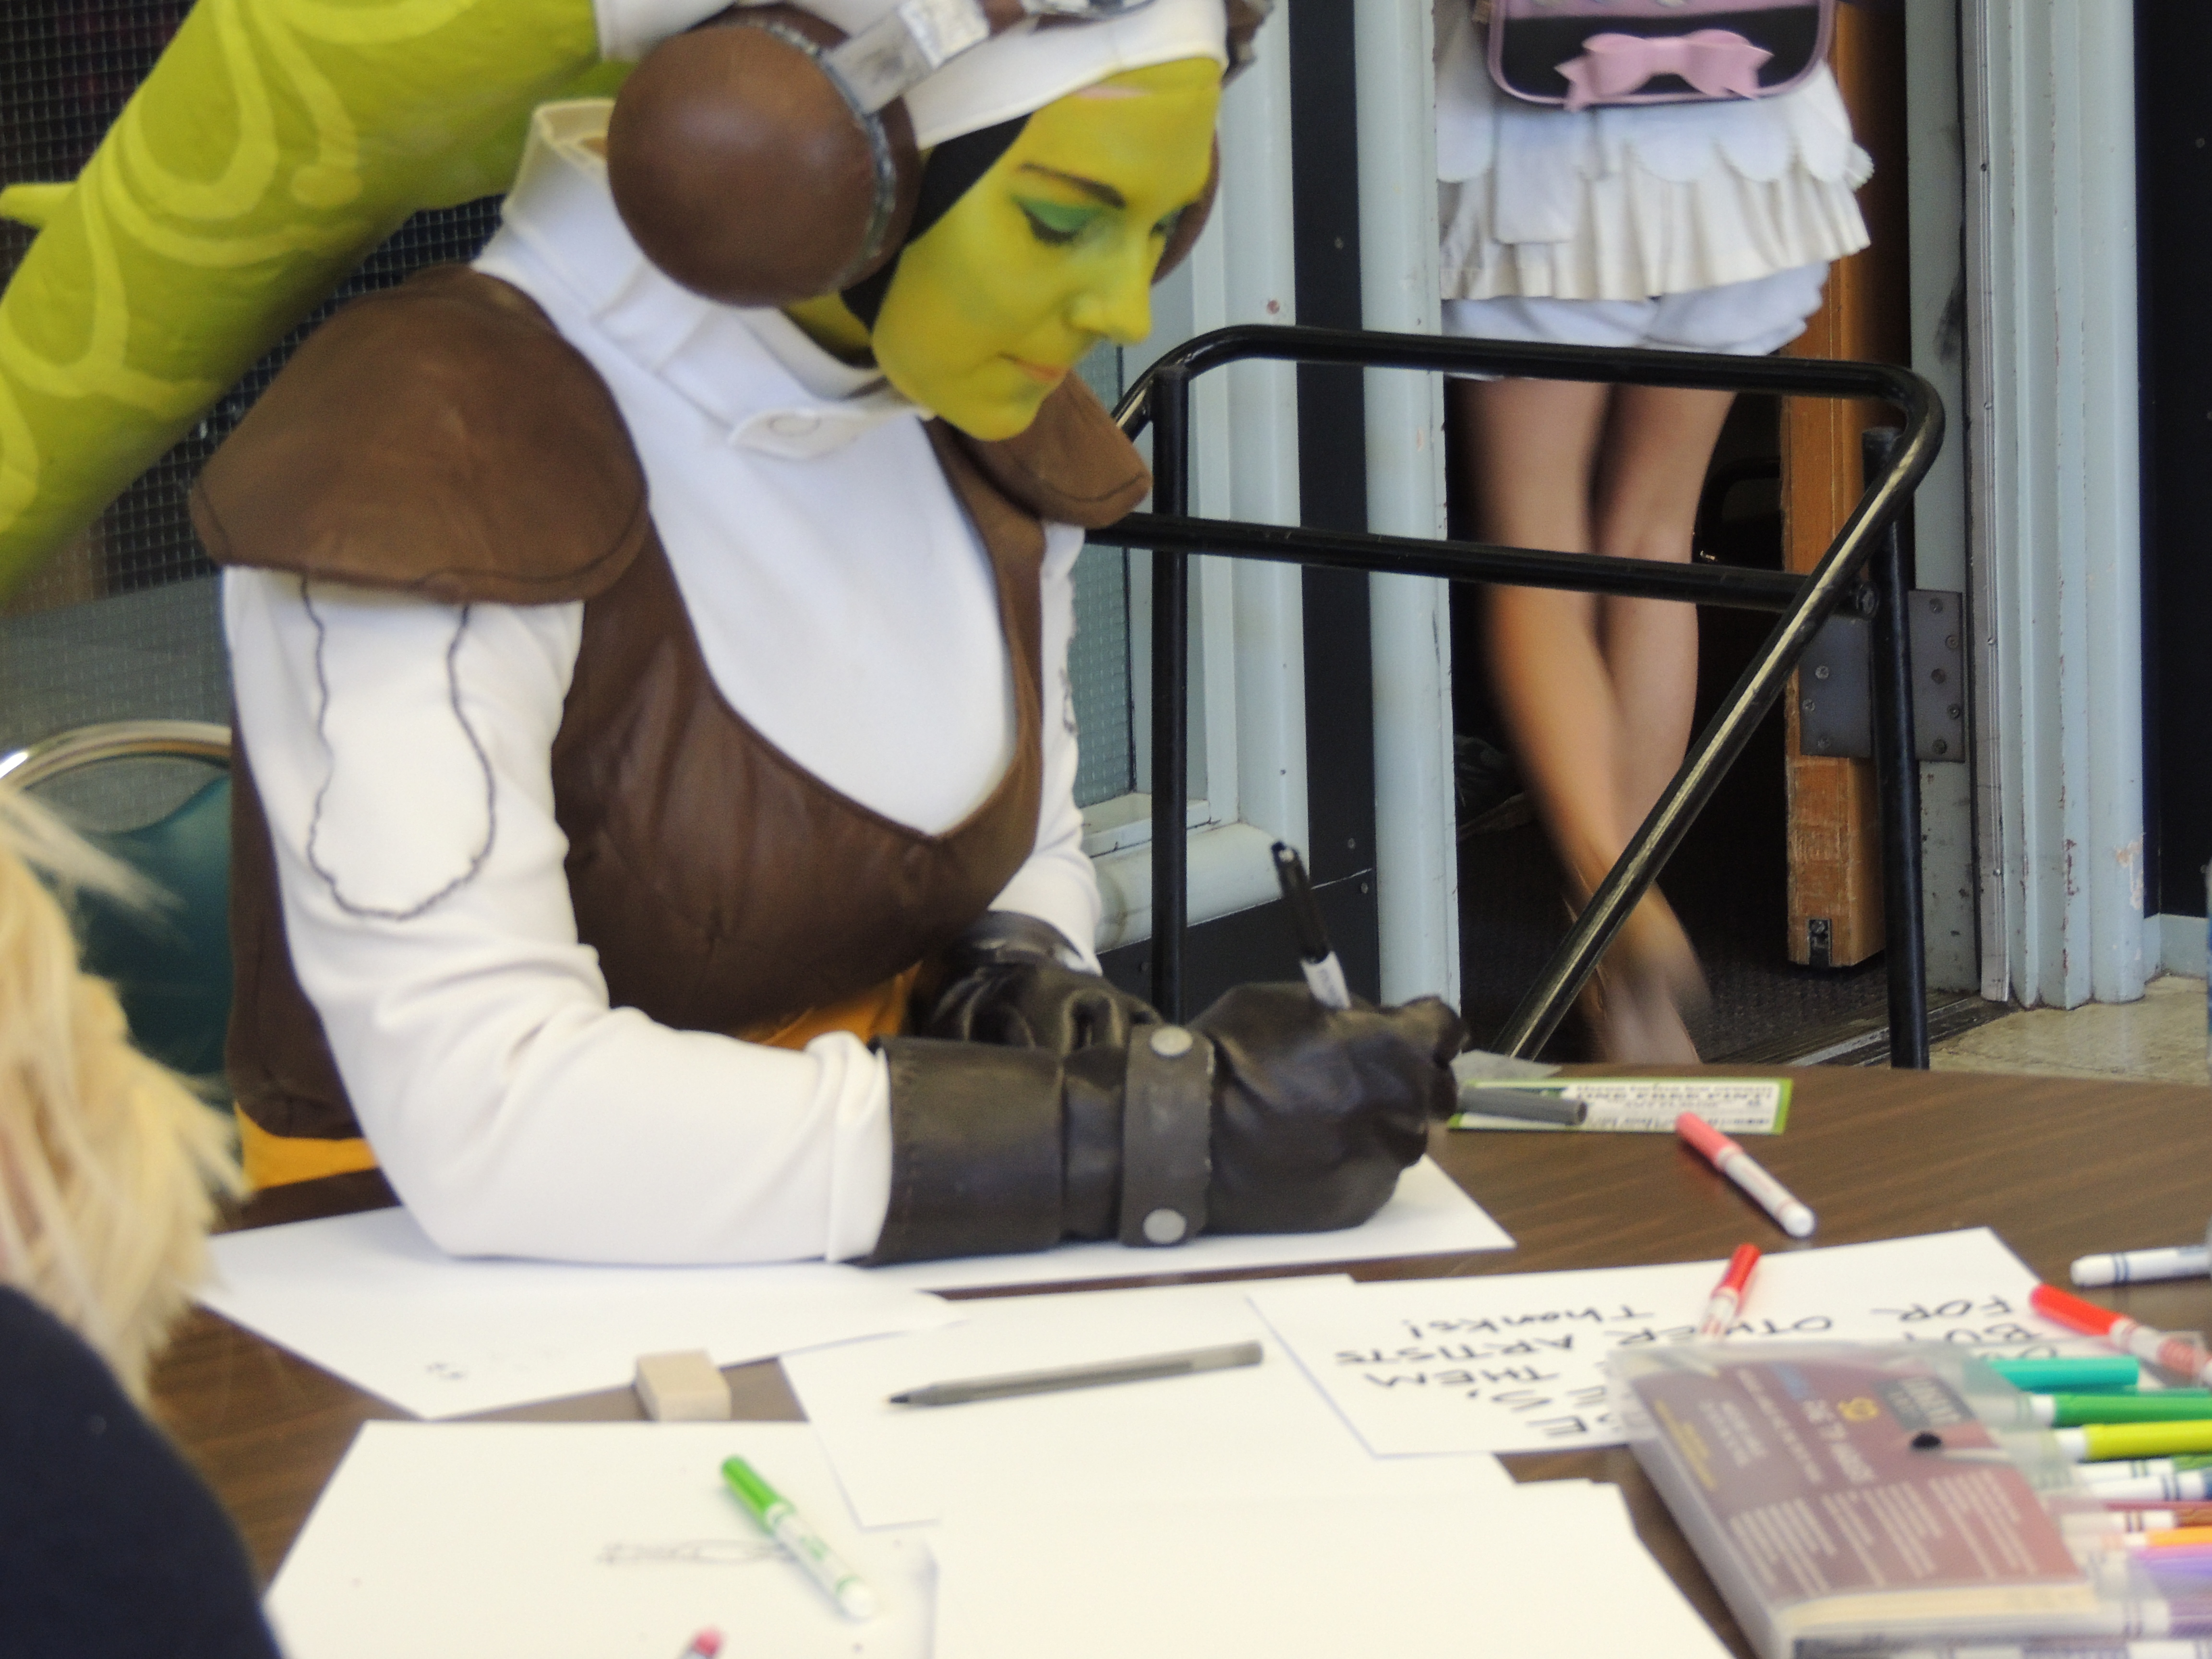 Cosplayers drawing